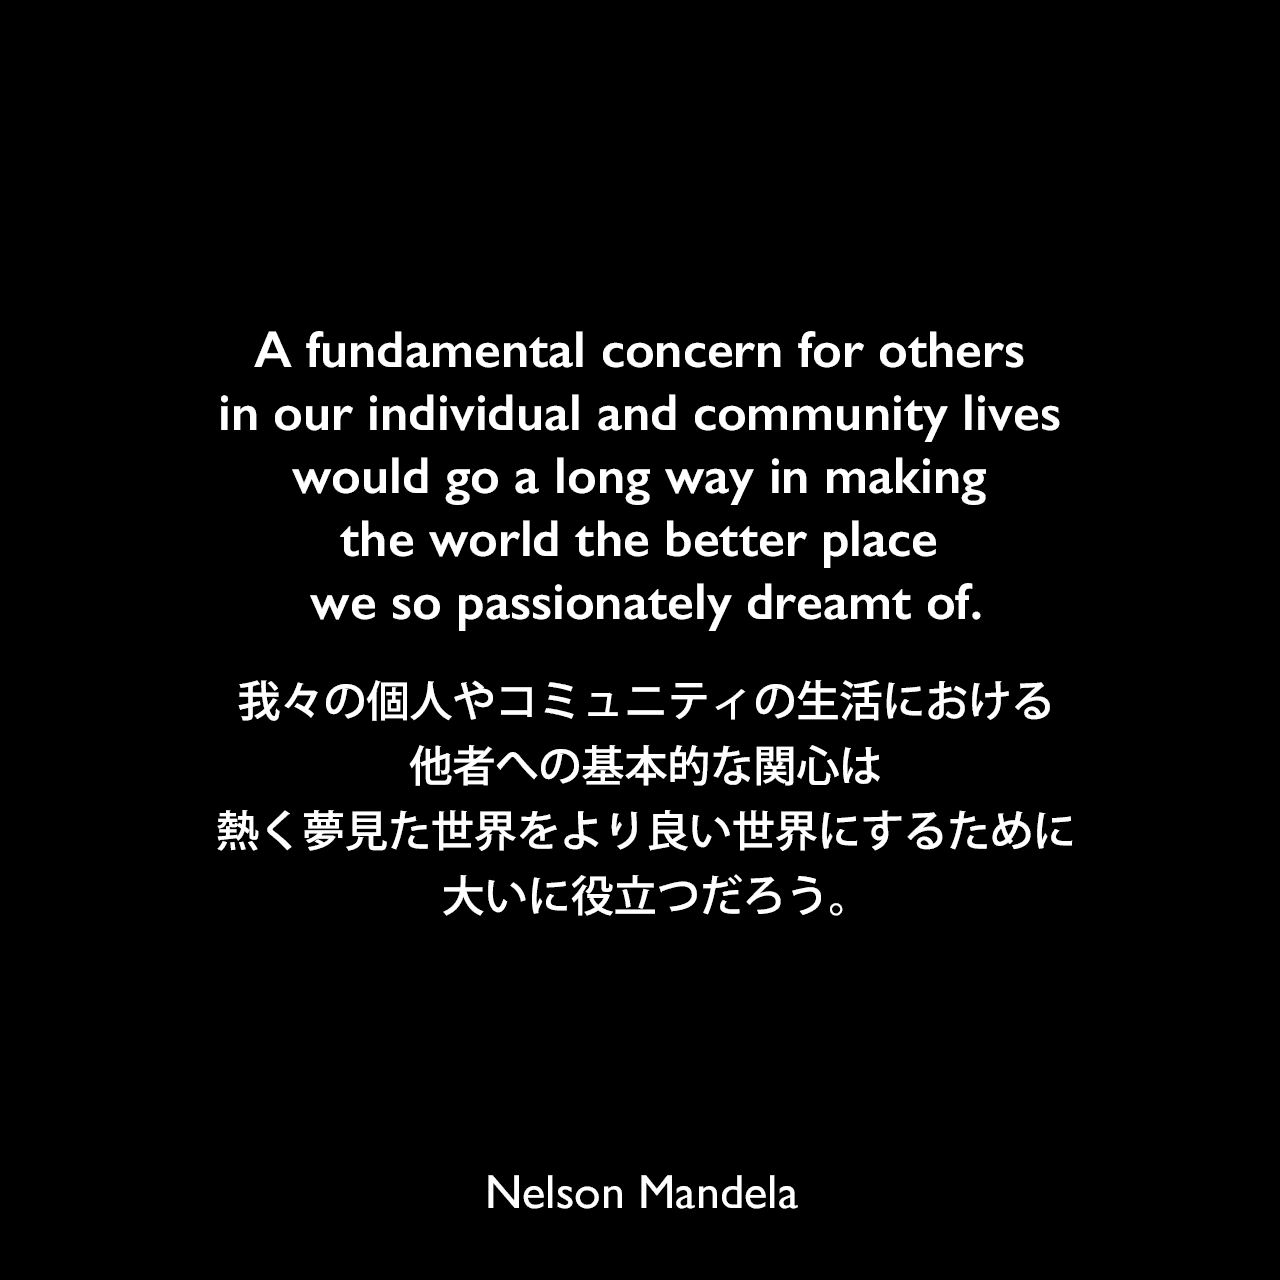 A fundamental concern for others in our individual and community lives would go a long way in making the world the better place we so passionately dreamt of.我々の個人やコミュニティの生活における他者への基本的な関心は、熱く夢見た世界をより良い世界にするために大いに役立つだろう。- ネルソン・マンデラによる本「Nelson Mandela by Himself: The Authorised Book of Quotations」よりNelson Mandela